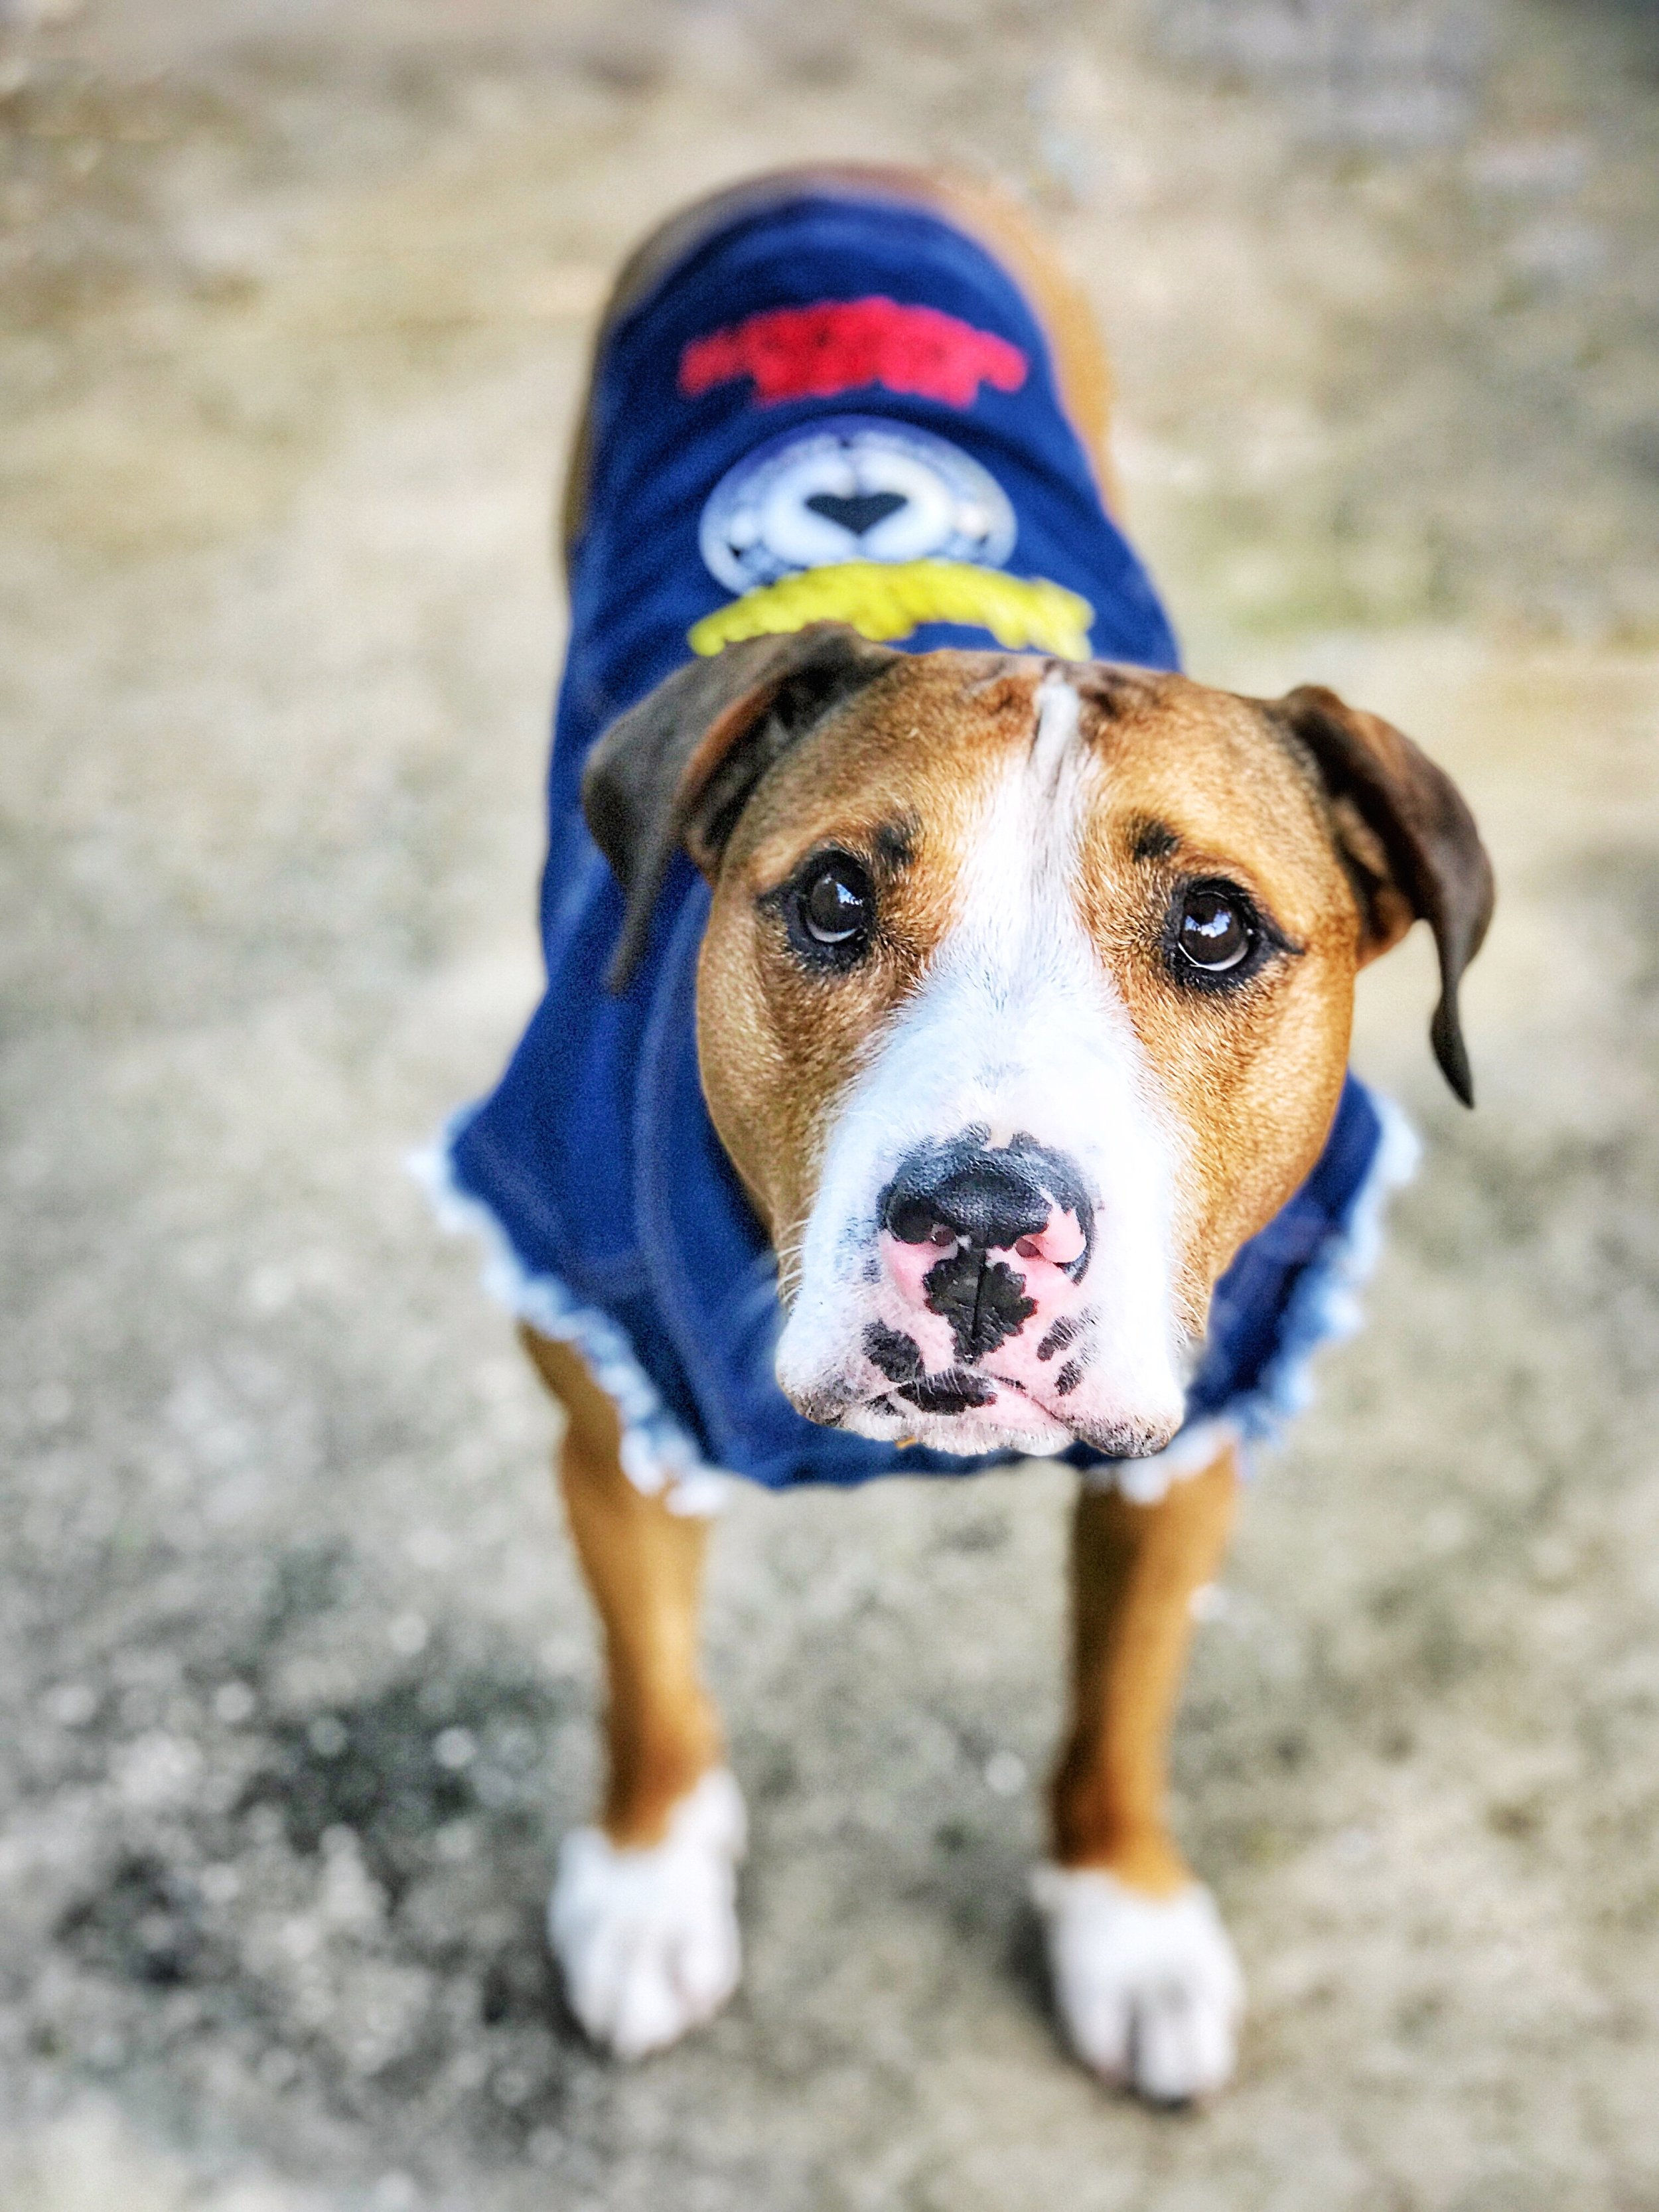 So mum, are you going to play with me now? Denim Jacket by  Pet Haus